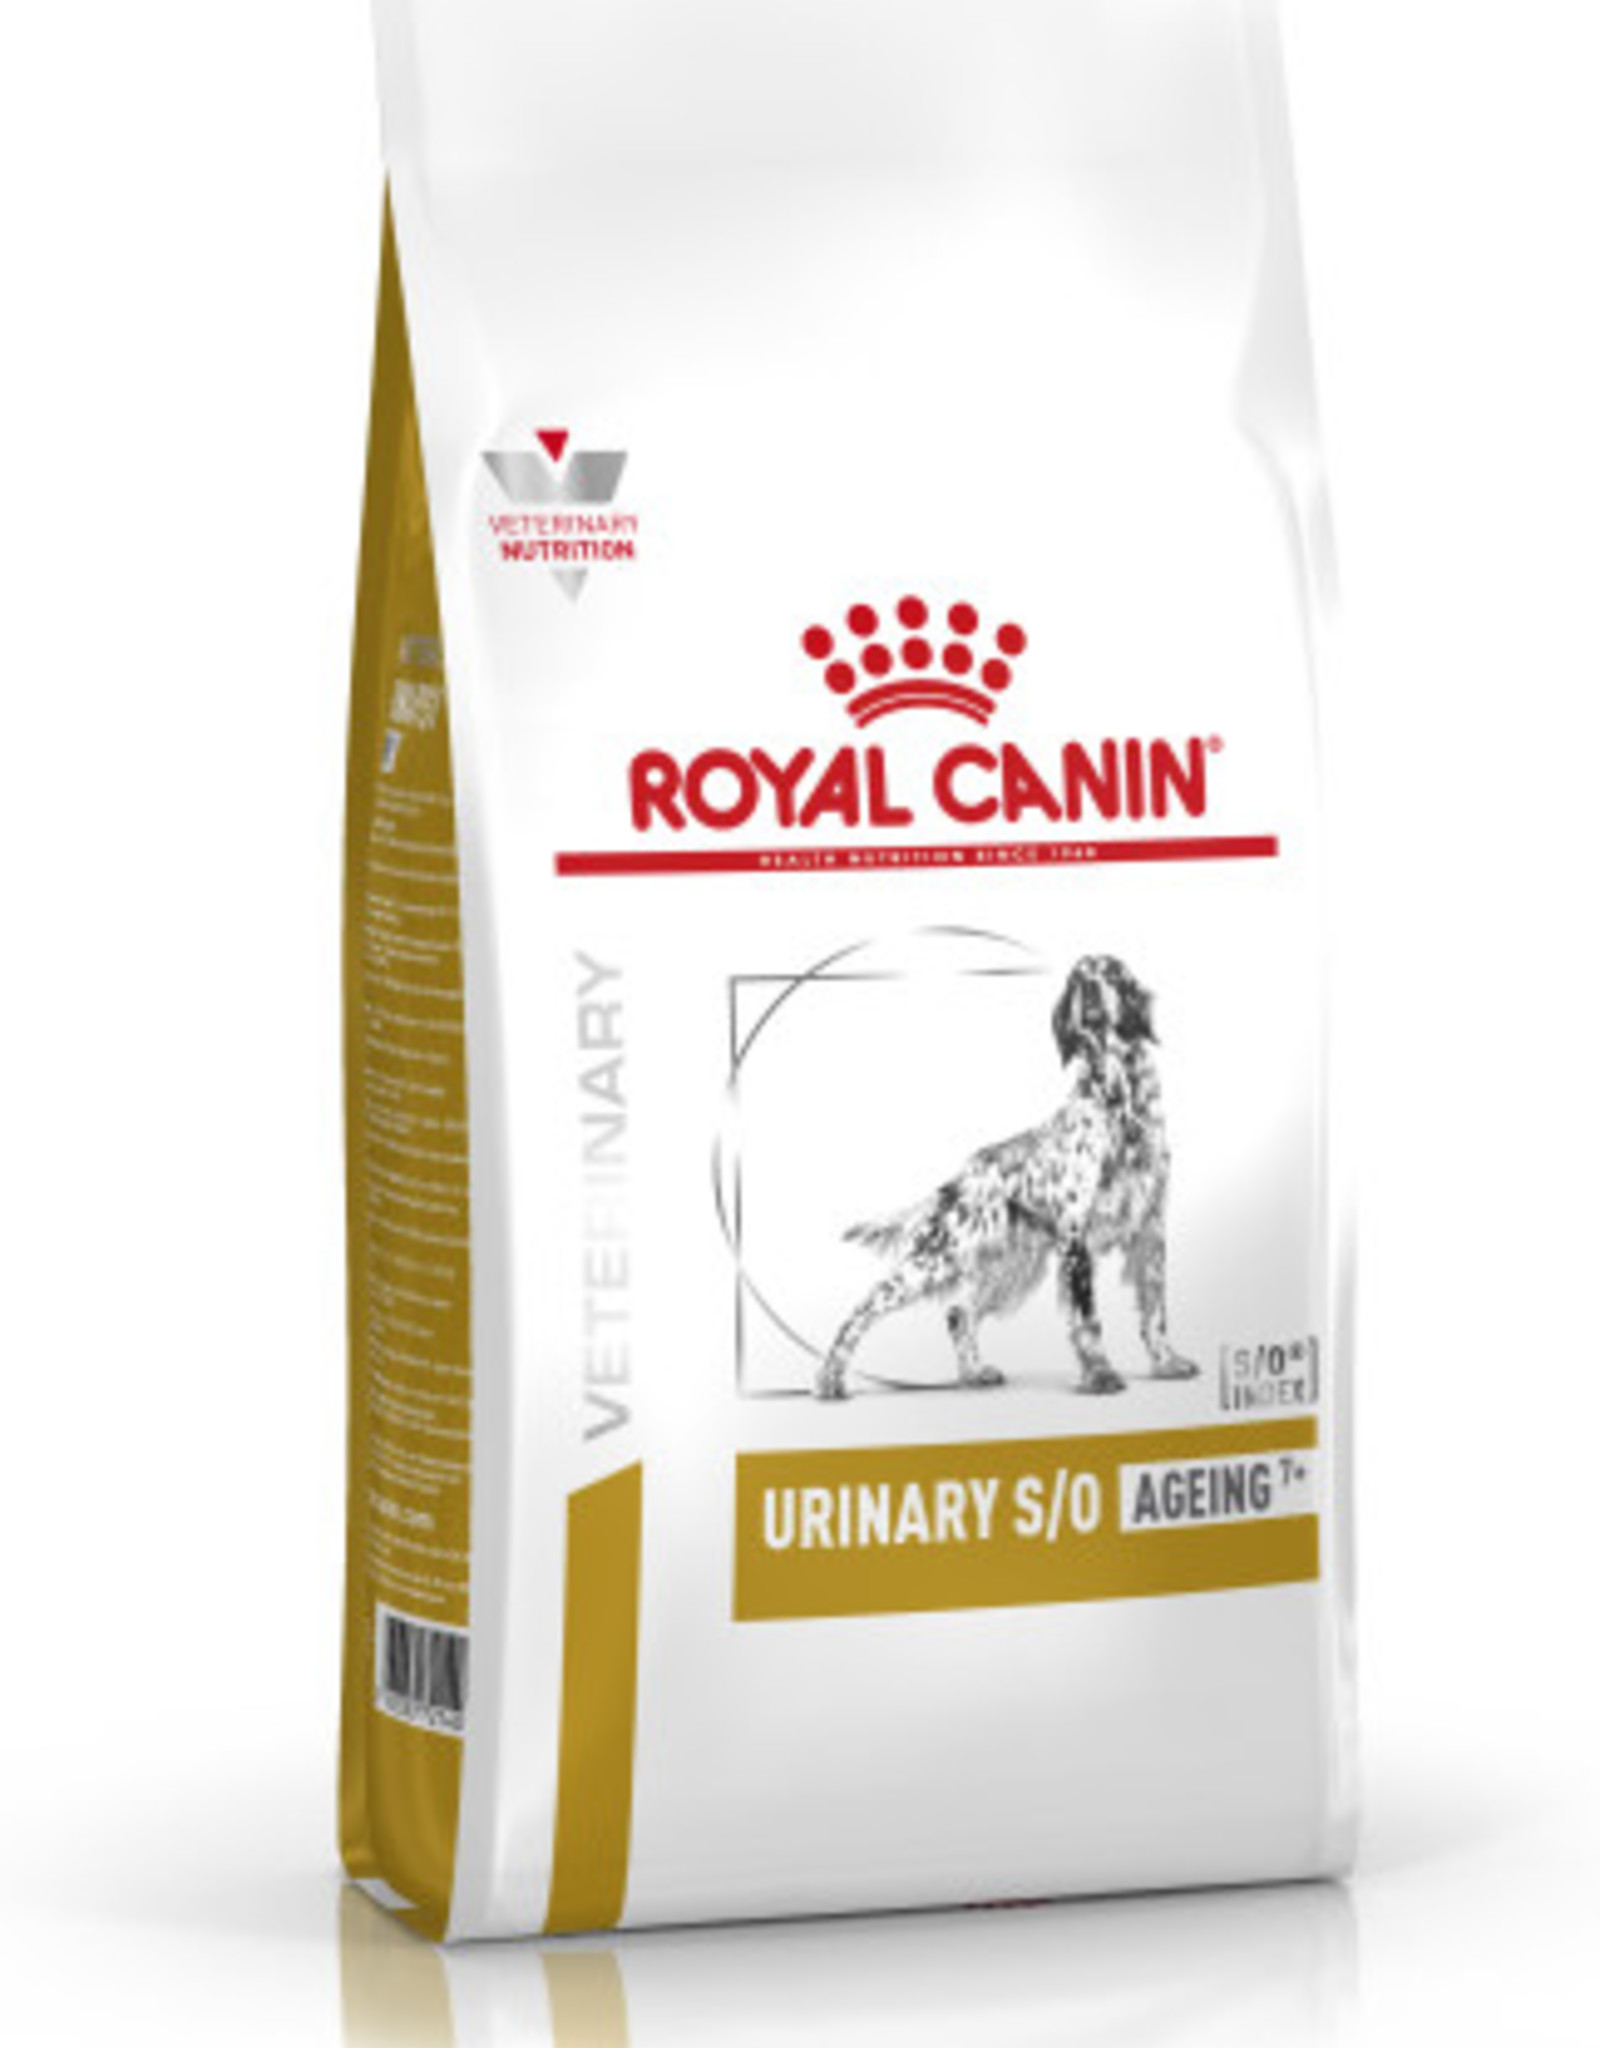 Royal Canin Royal Canin Urinary S/o Ageing Dog 1,5kg